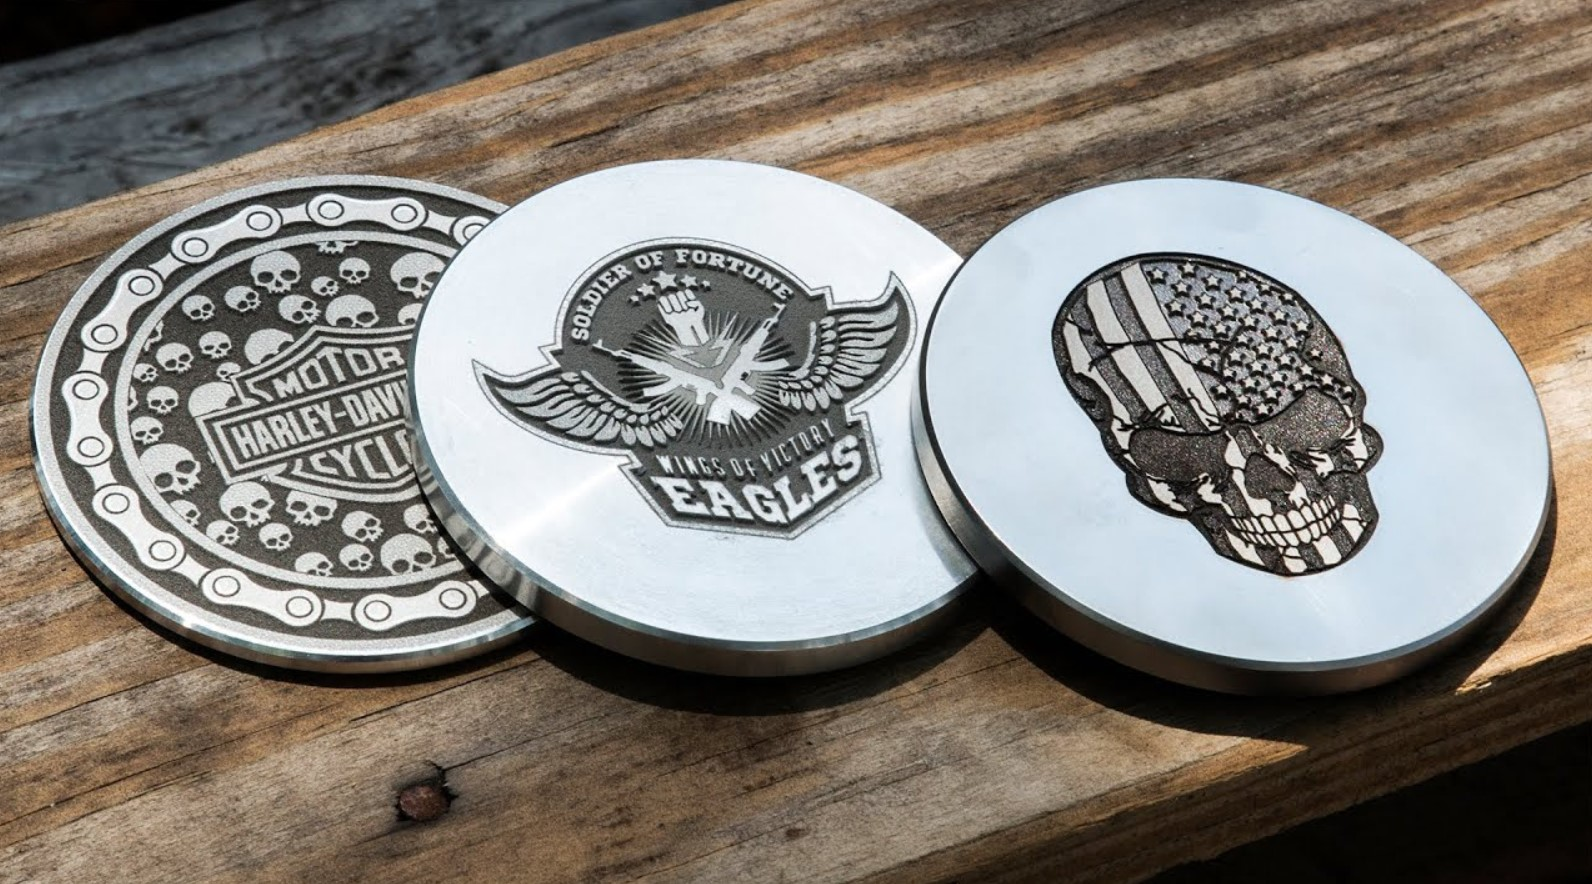 What You Must Know About Laser Engraving